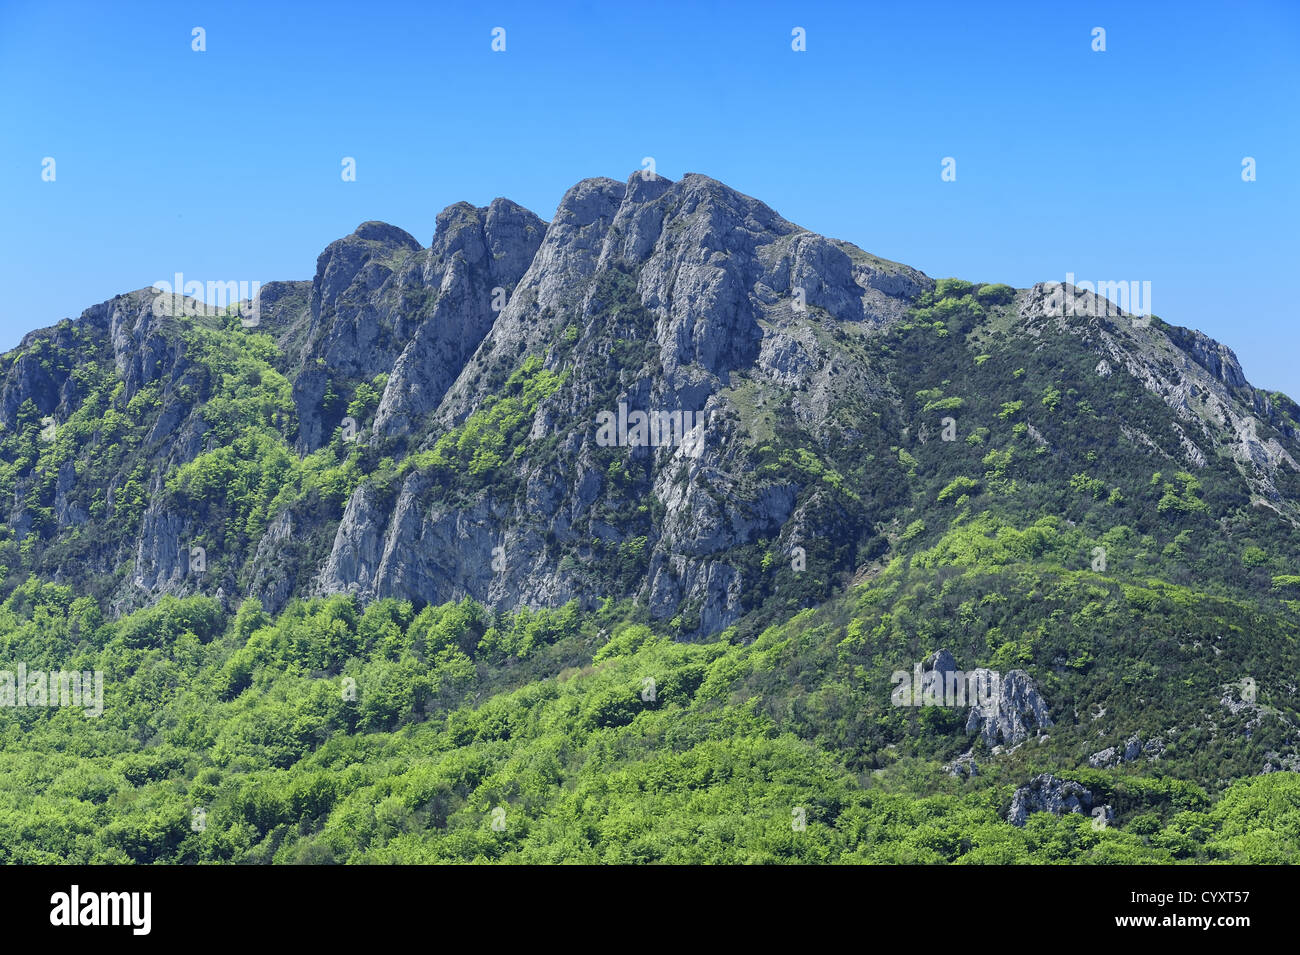 the peak of Bugarach, Languedoc-Roussillon, France where peoples may be saved in apocalypse by the mayan calendar - Stock Image